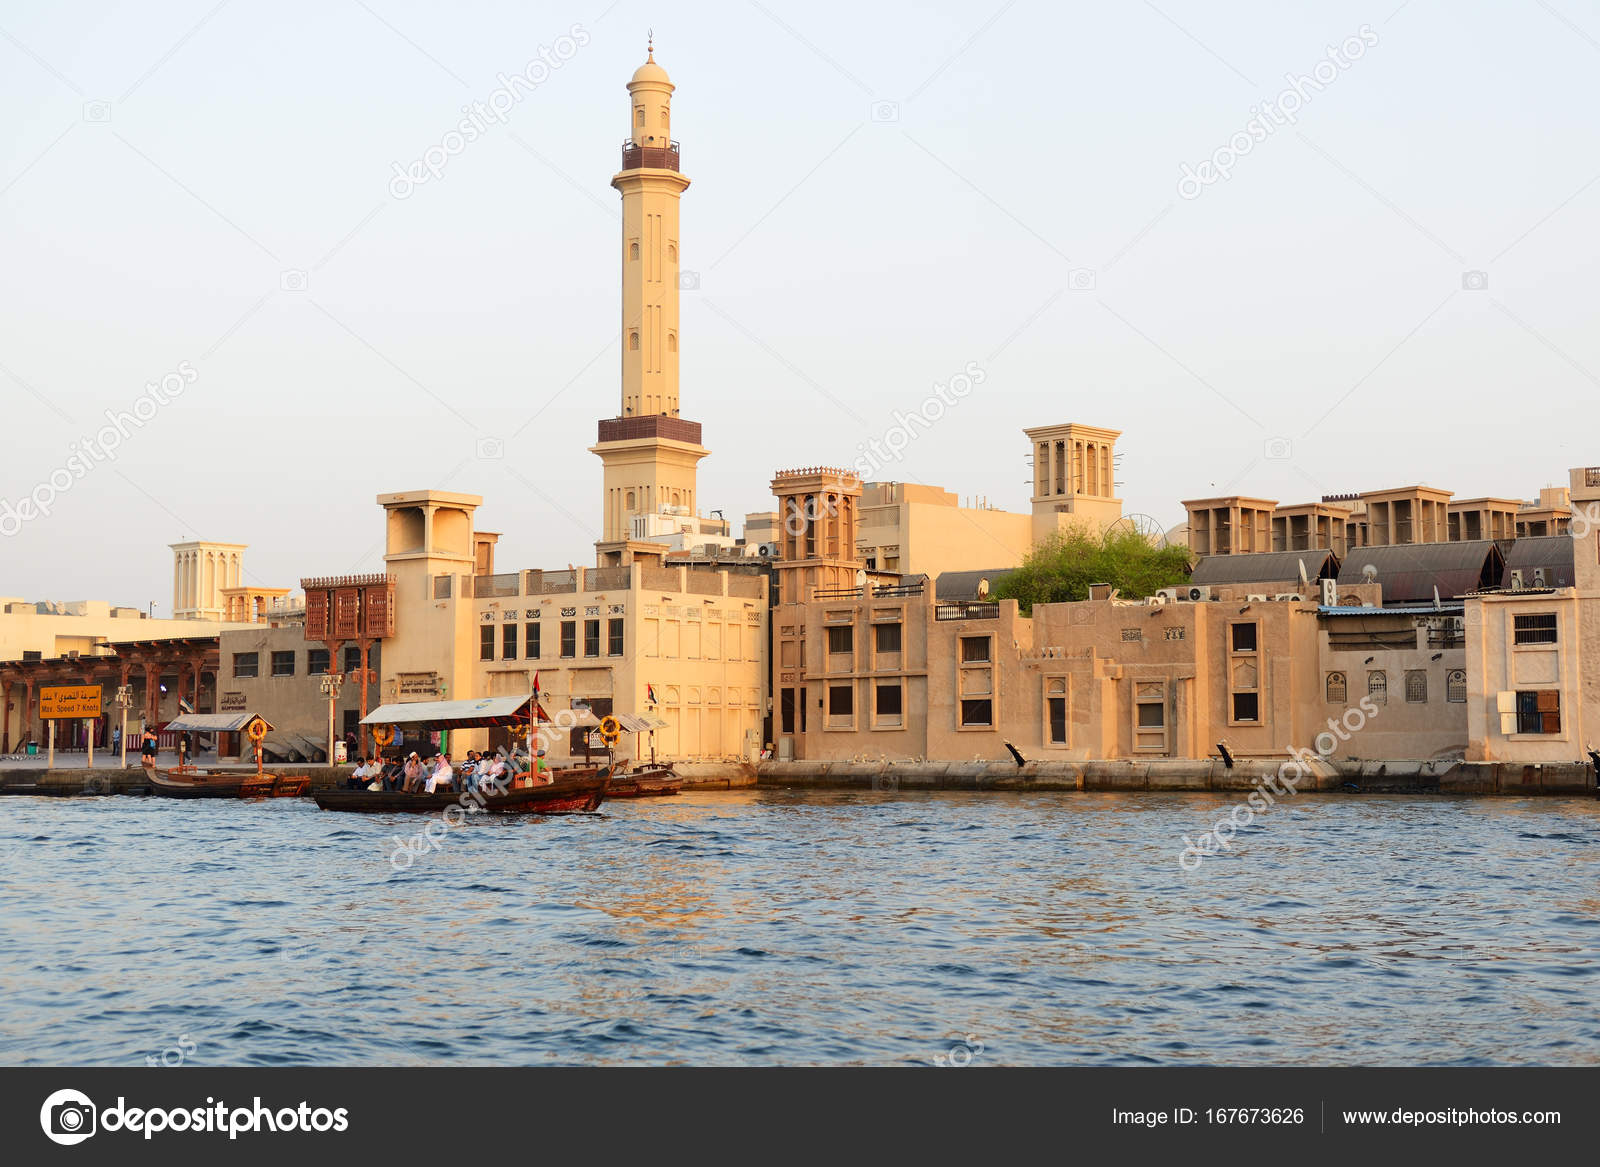 DUBAI, UAE - SEPTEMBER 10: The traditional Abra boat with